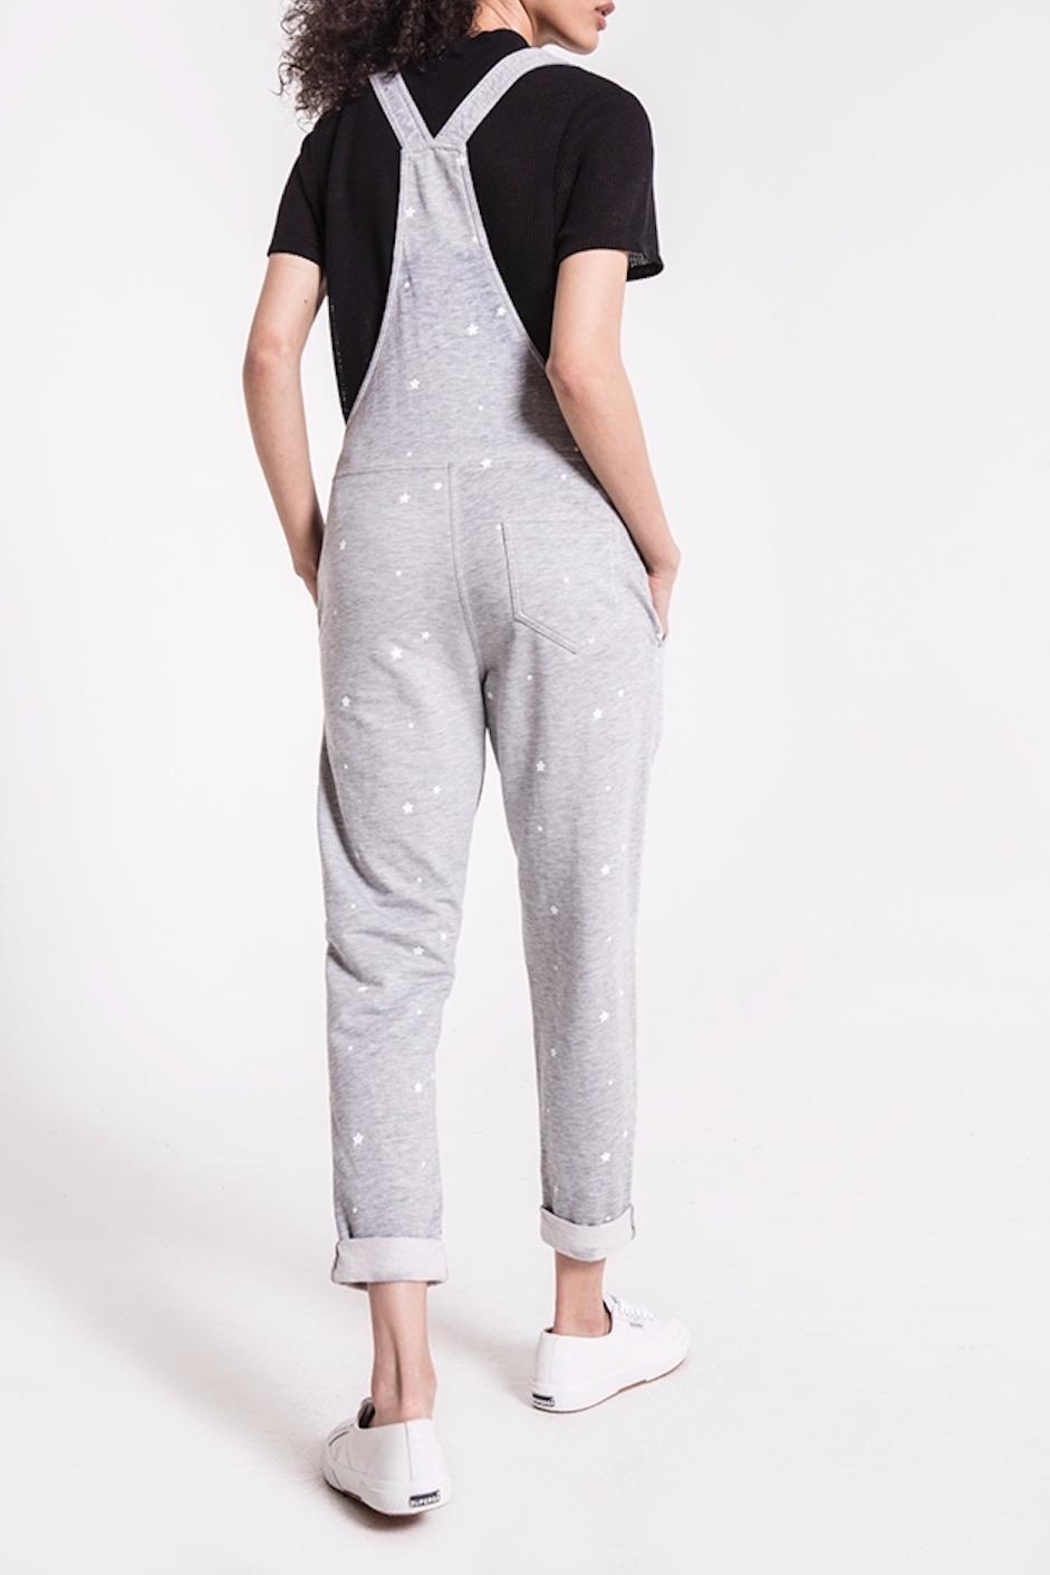 z supply Star Print Overalls - Side Cropped Image